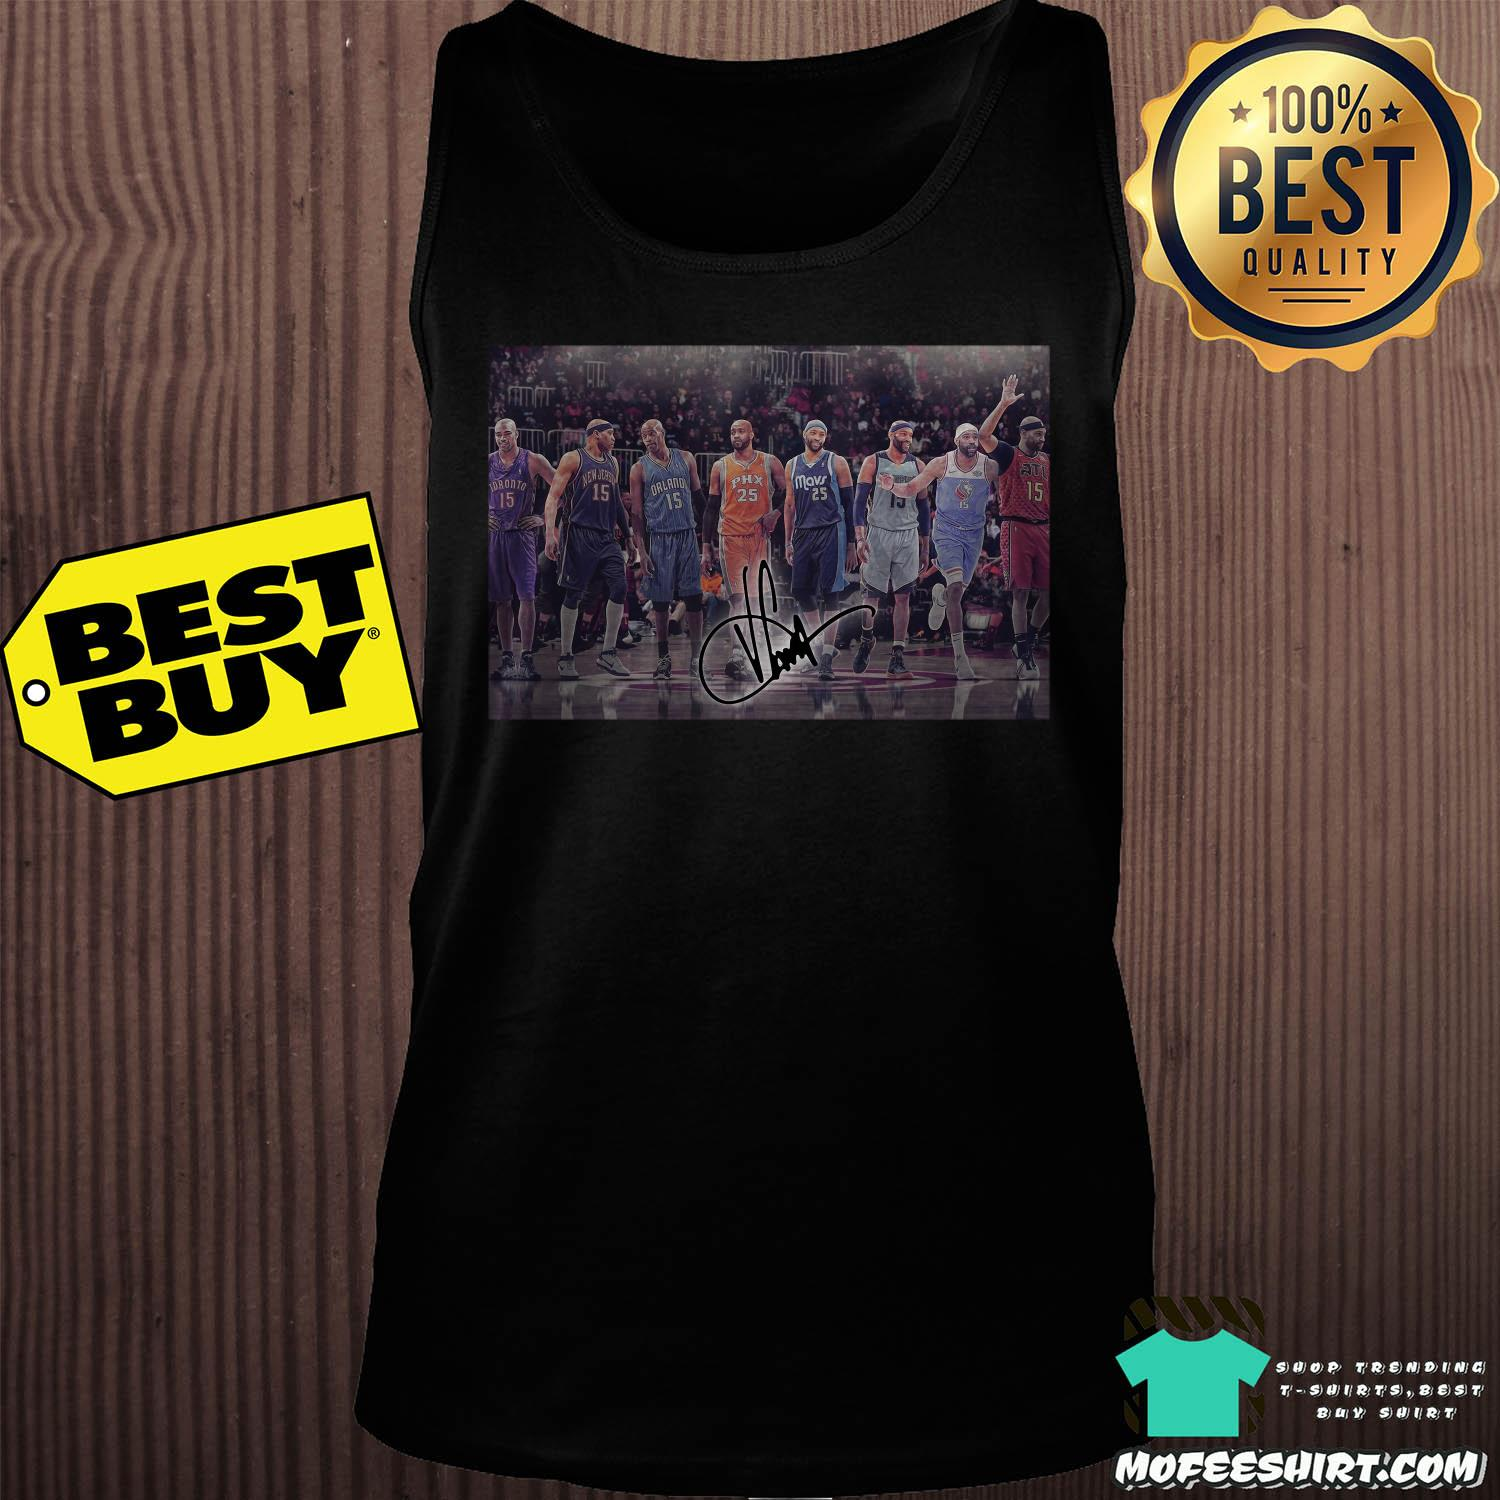 2019 nba brooklyn kevin durant kyrie irving moves toronto signature tank top - 2019 NBA Brooklyn Kevin Durant Kyrie Irving Moves Toronto signature shirt